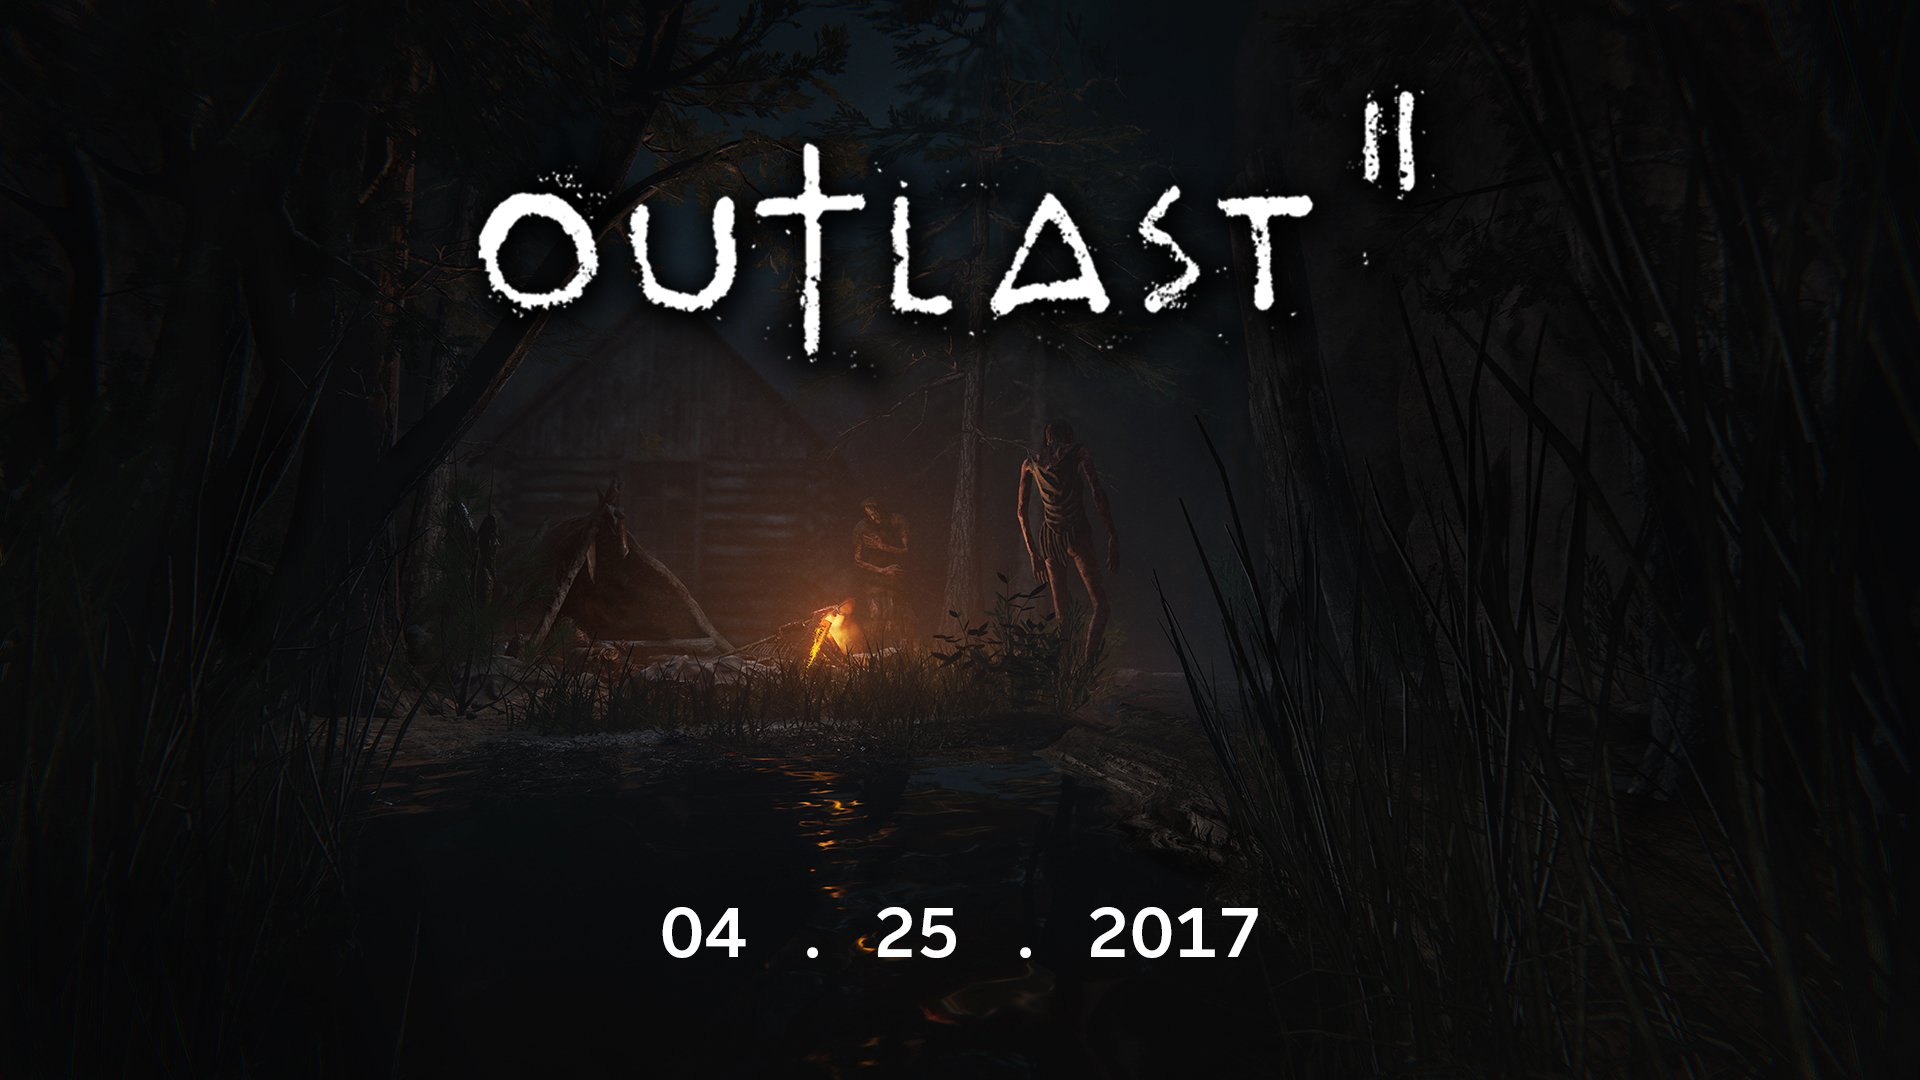 Outlast 2 and Trilogy Box Set Releasing on April 25